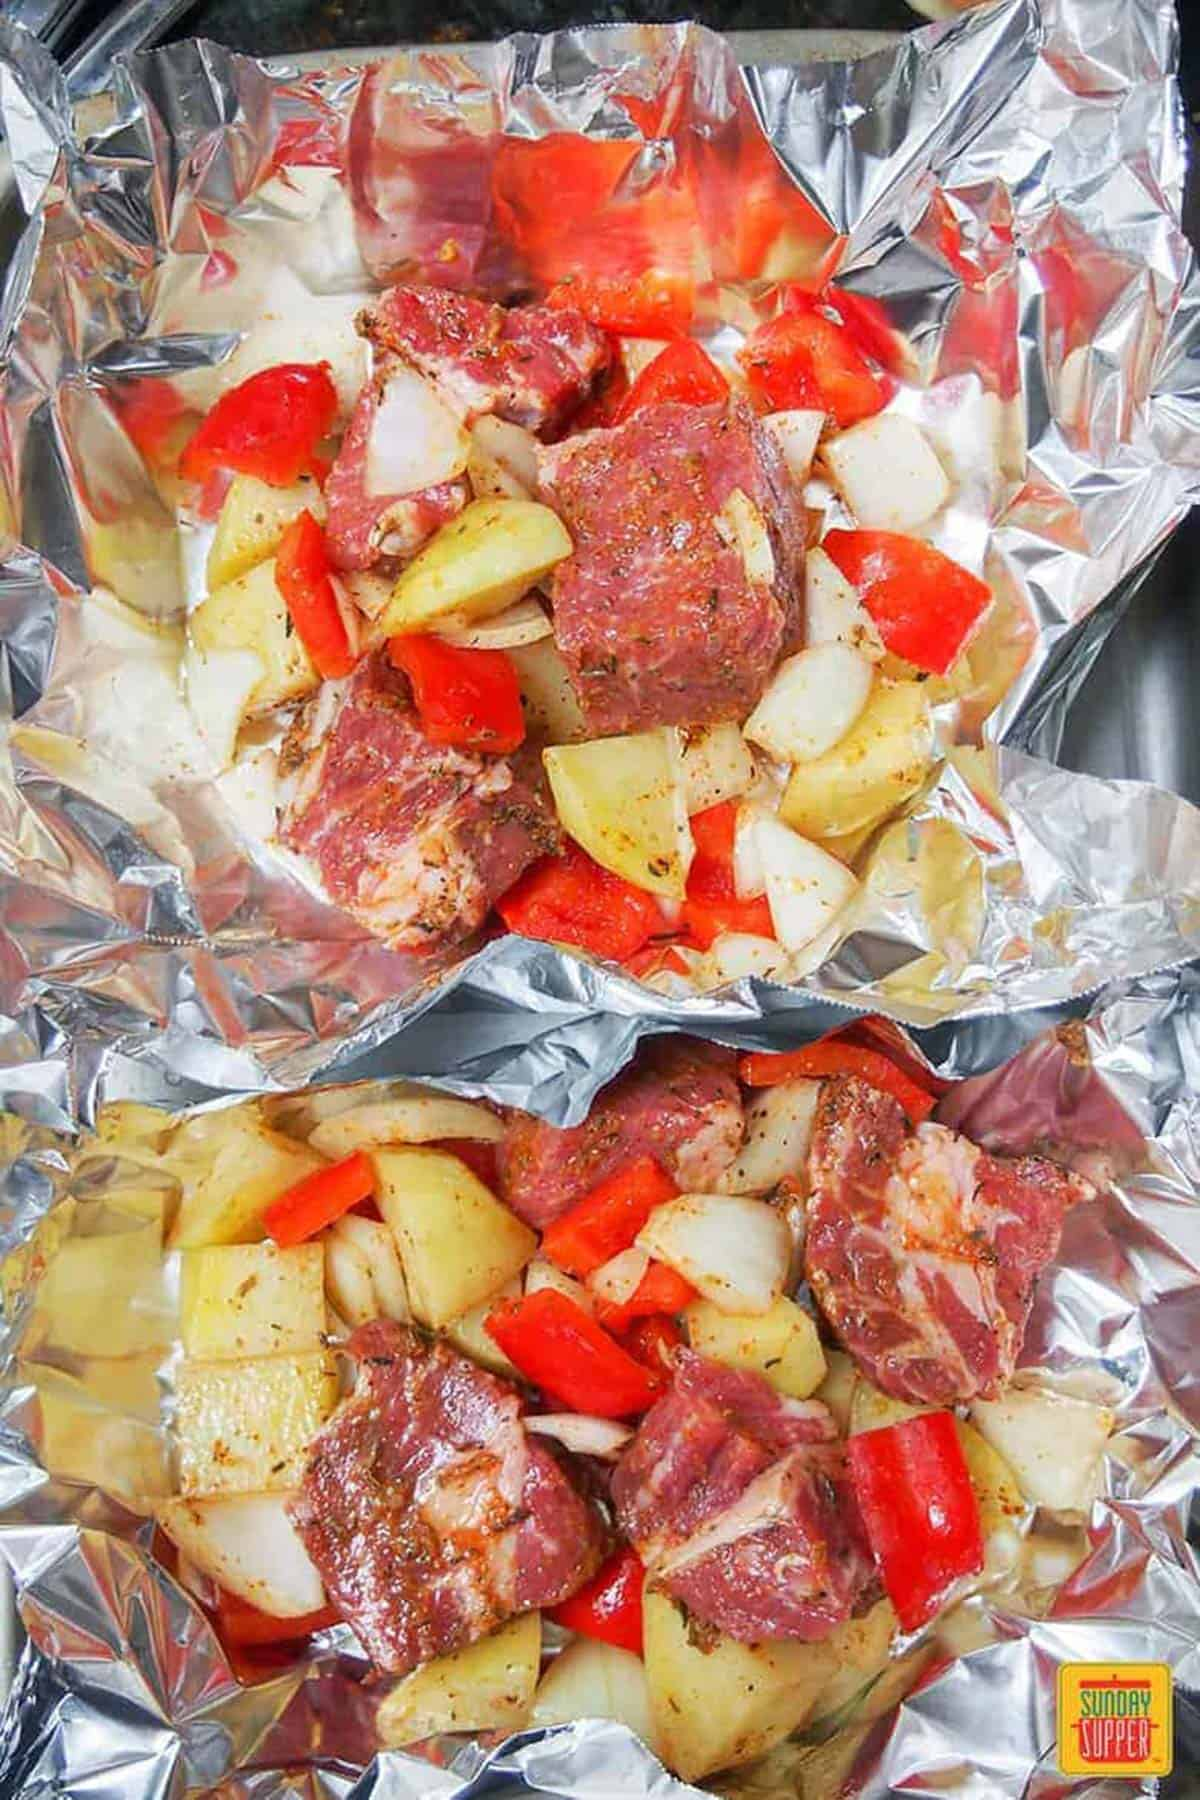 Steak, onions, peppers, and seasonings with potatoes in a foil pack